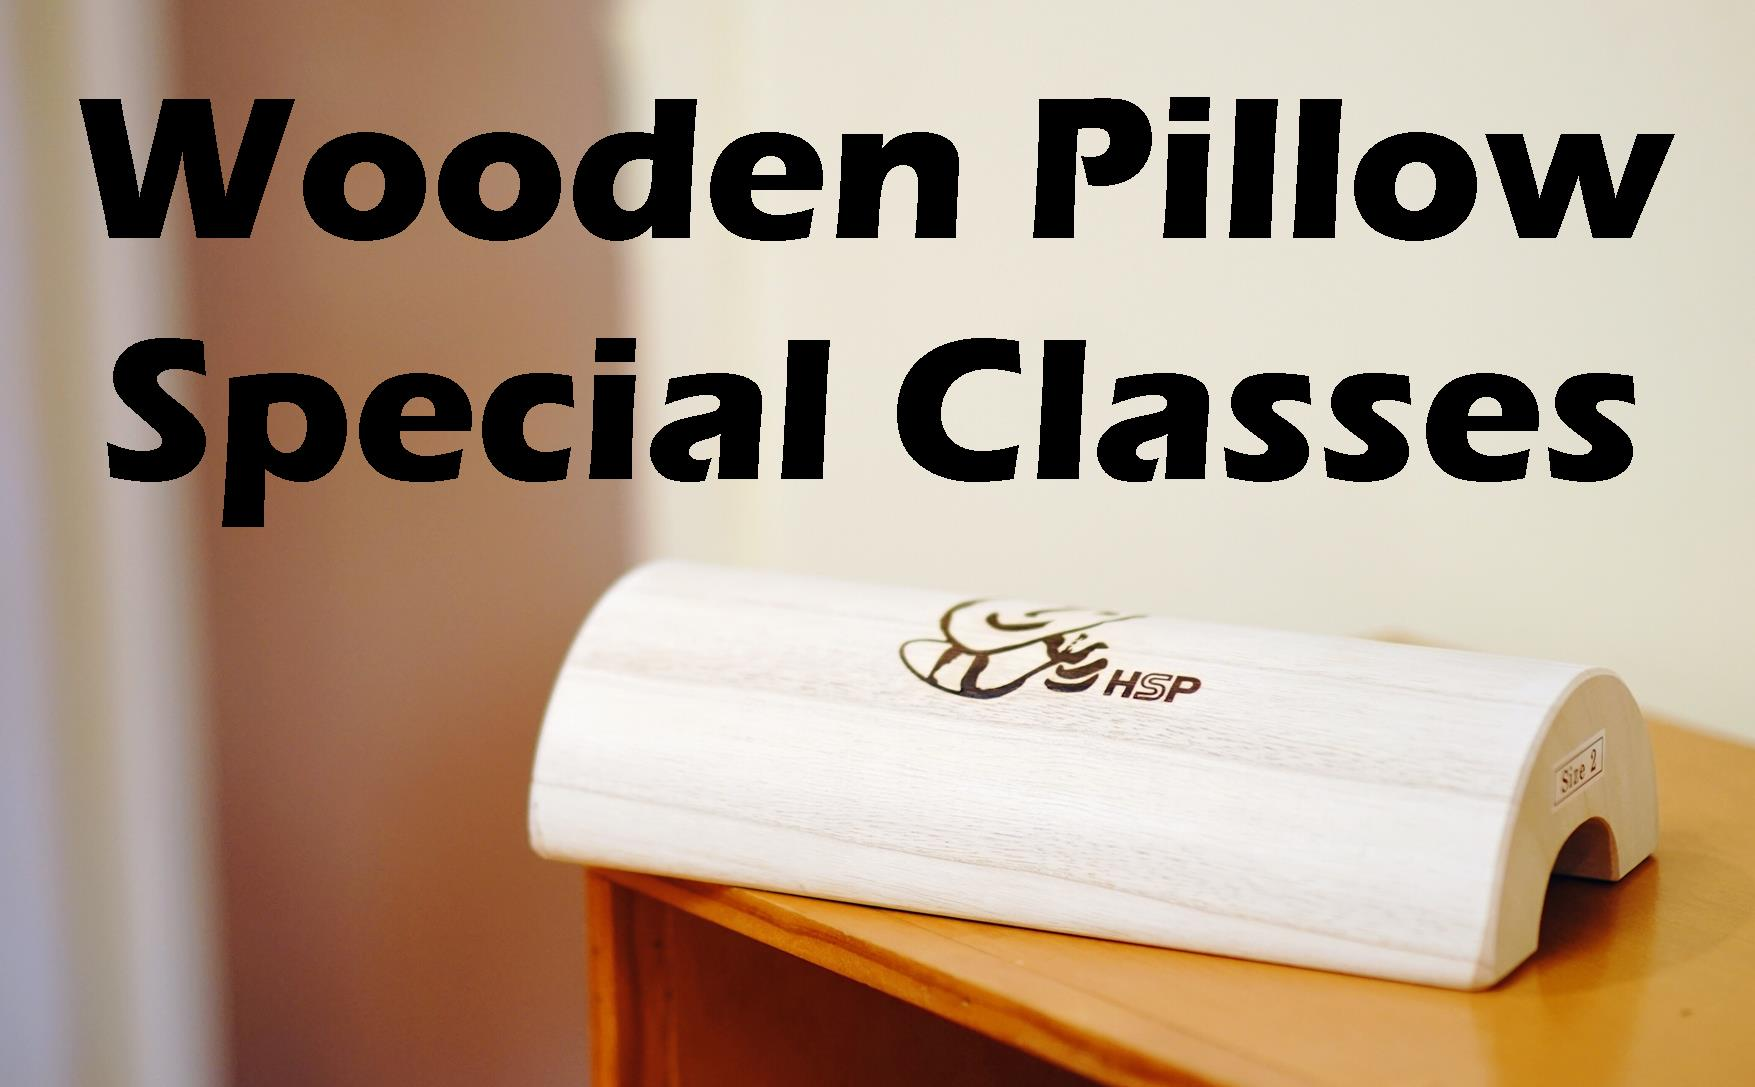 Wooden Pillow Classes Nov 6th 18th 27th